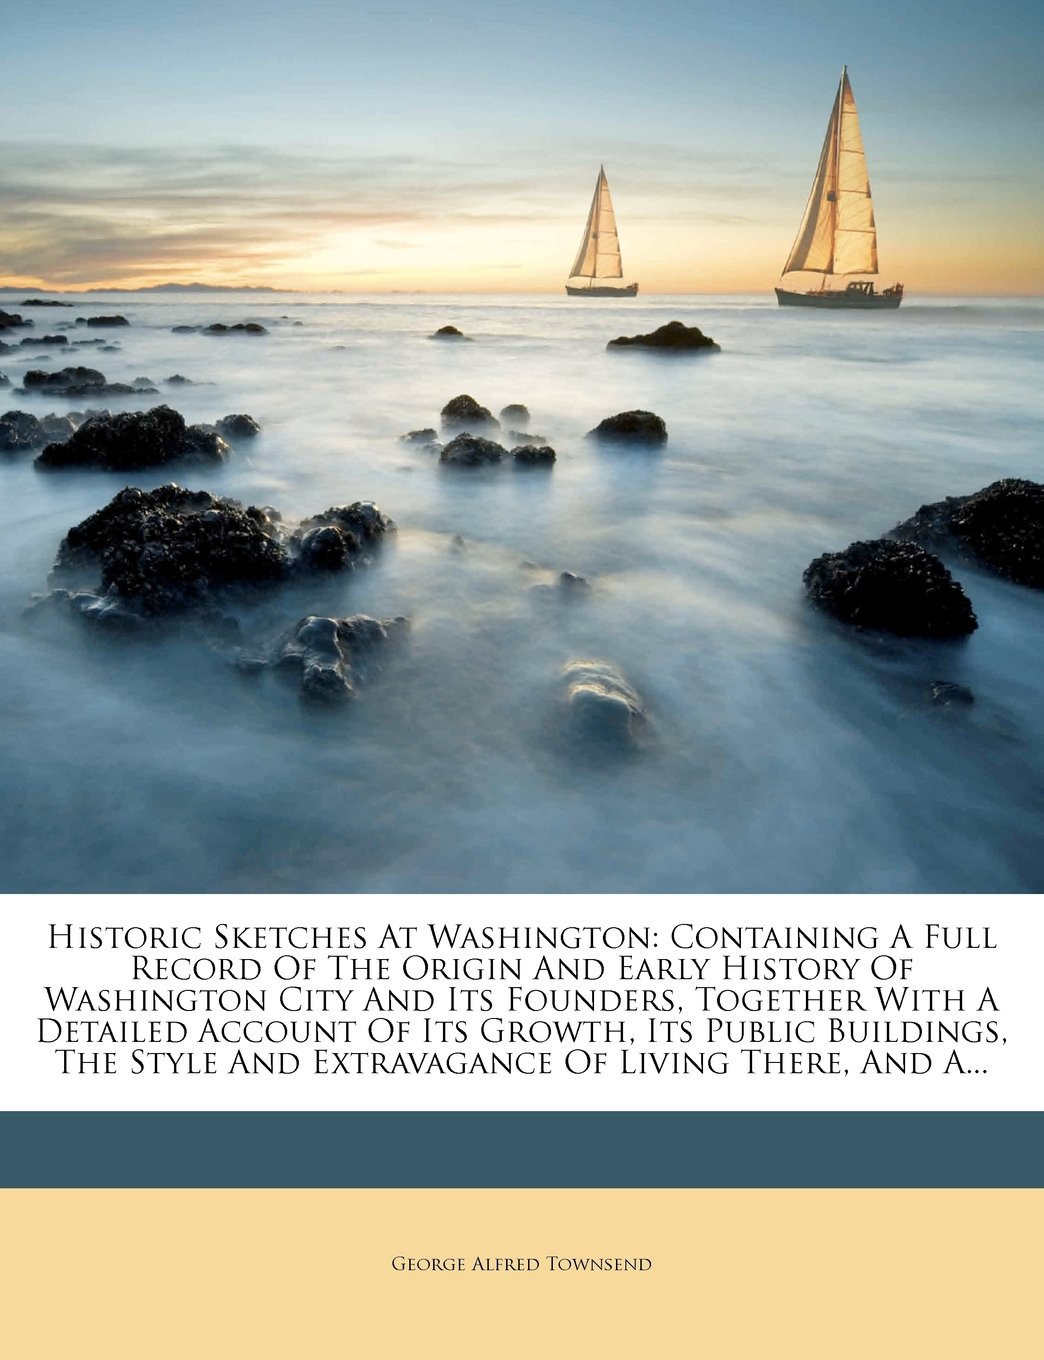 Historic Sketches At Washington: Containing A Full Record Of The Origin And Early History Of Washington City And Its Founders, Together With A ... And Extravagance Of Living There, And A... ebook